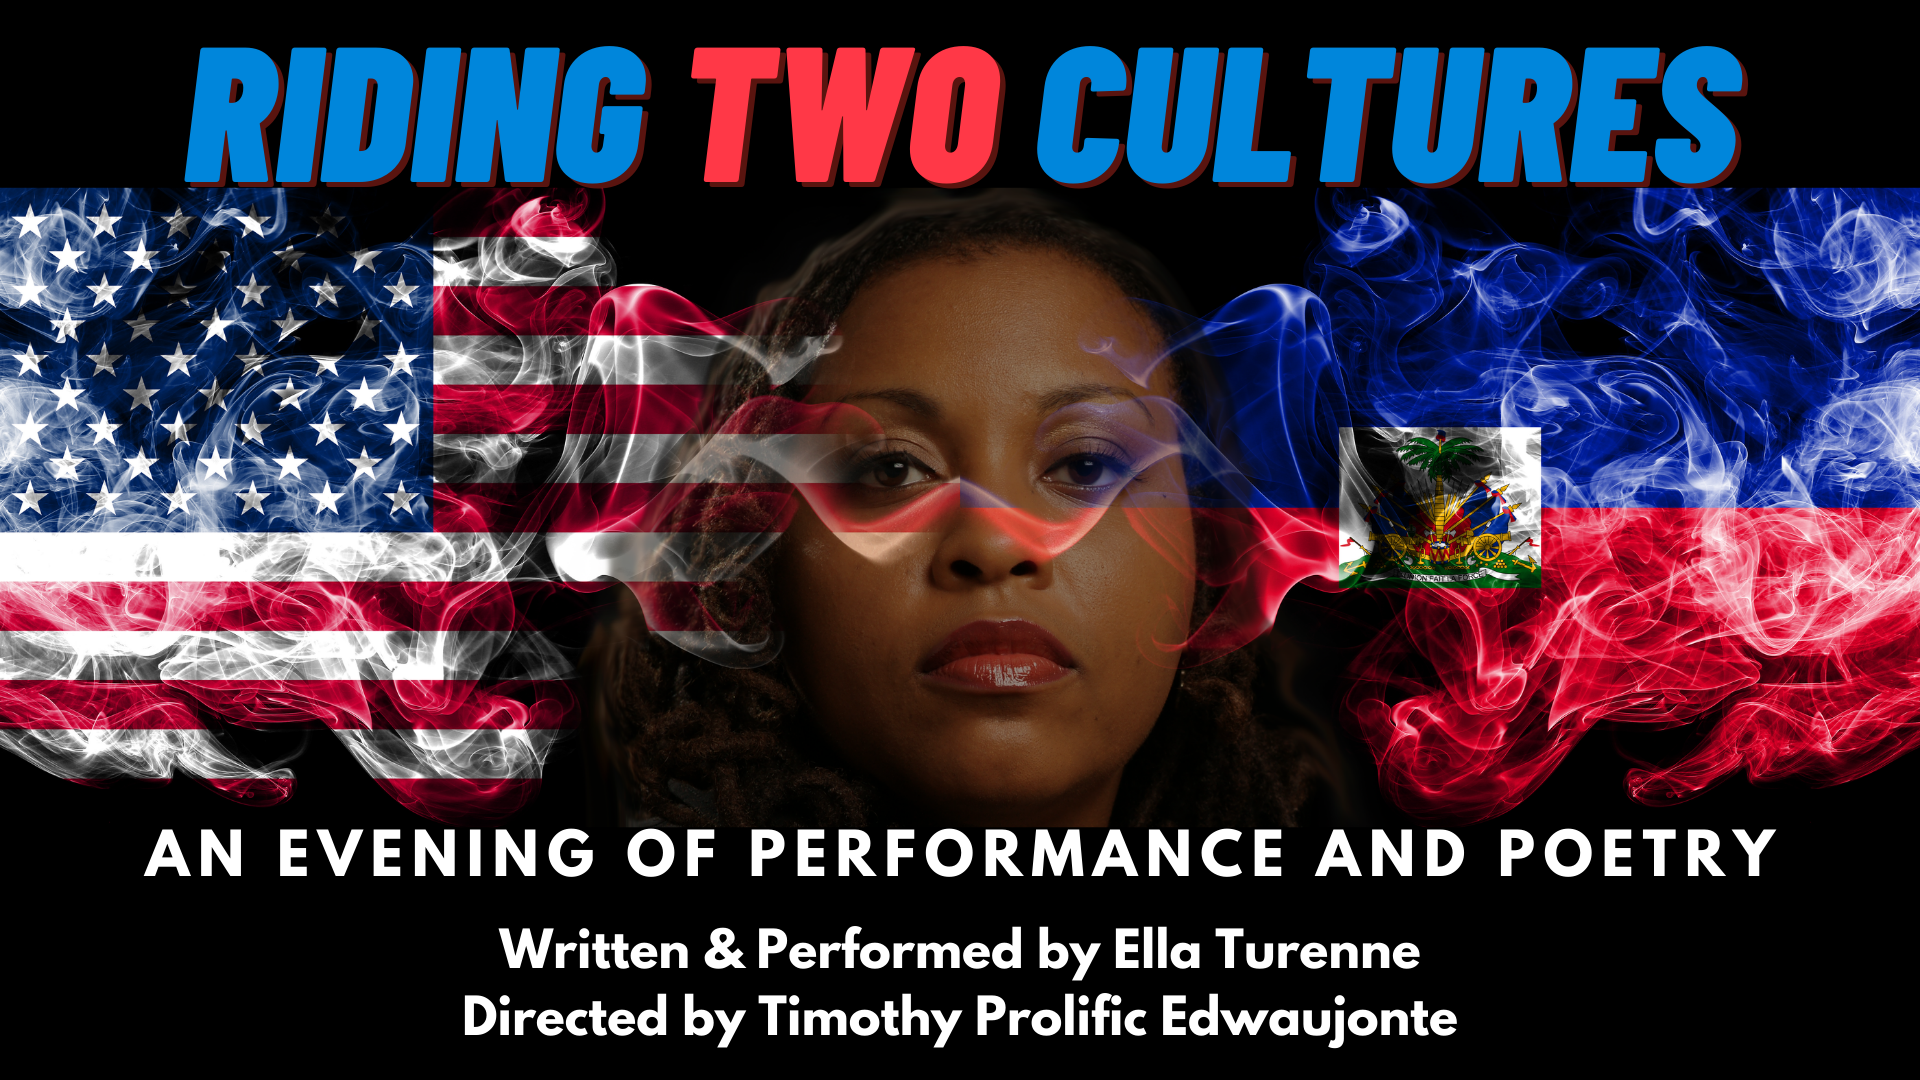 Riding Two Cultures - Nov 11 @ 7pm PST